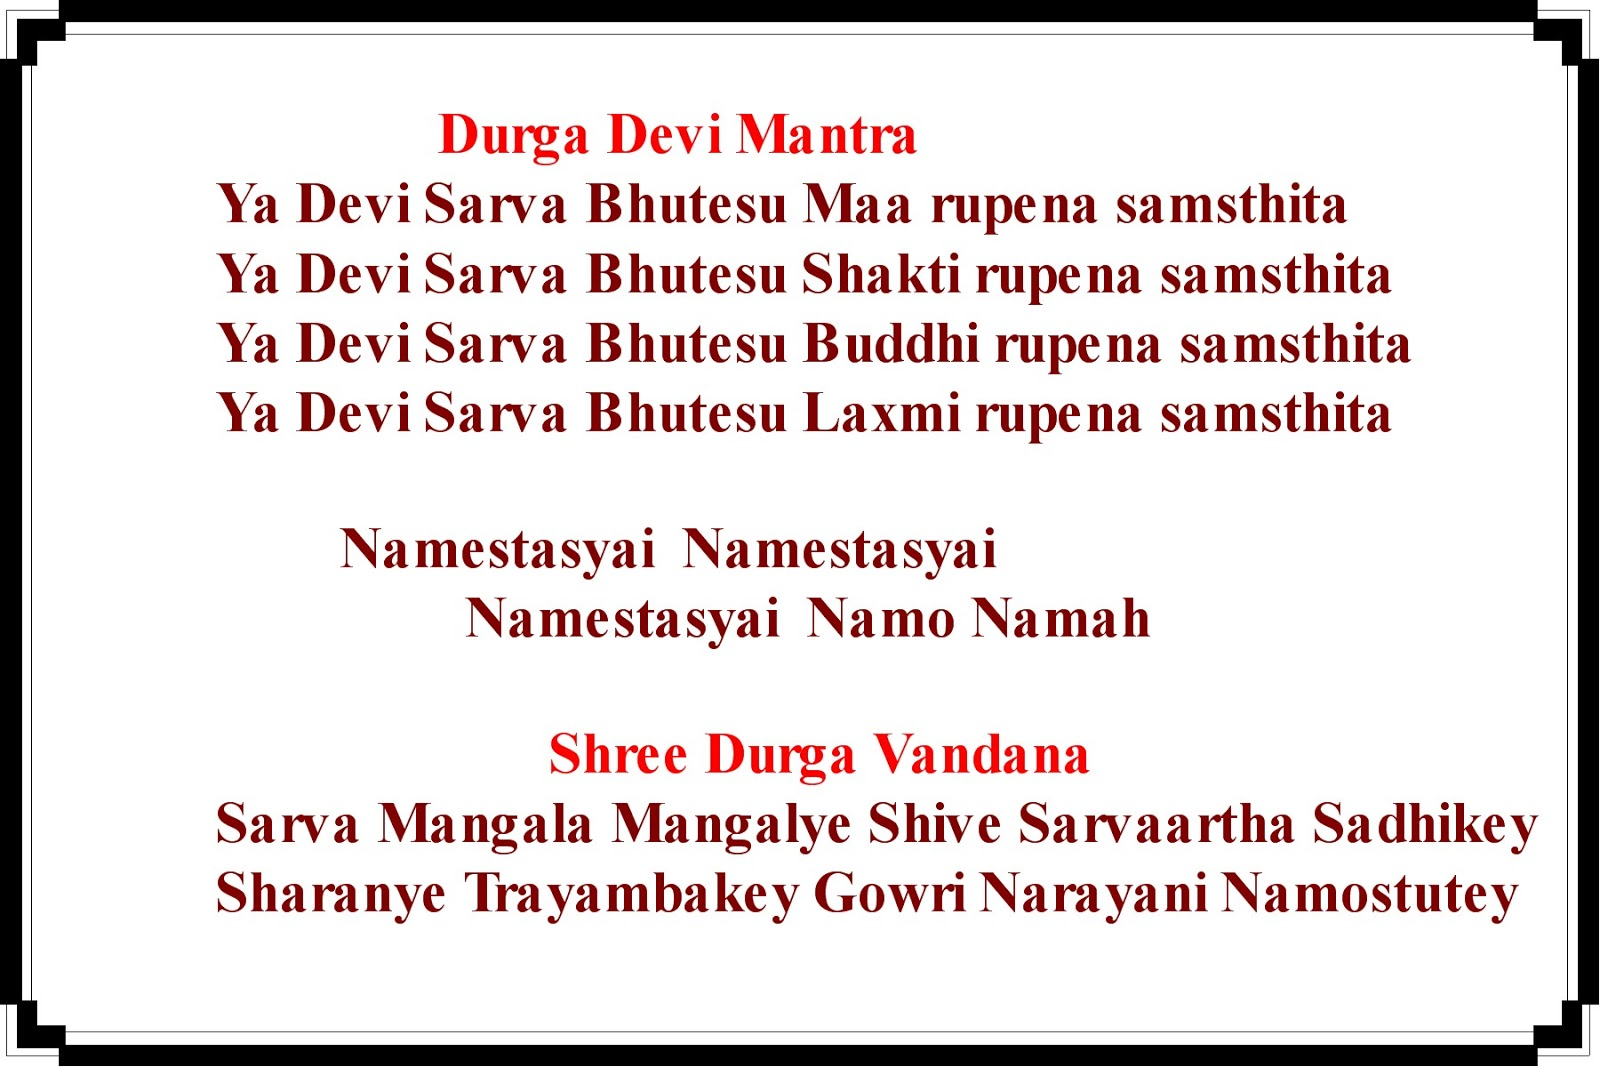 mantras essay Gayatri mantra astrophysics and why mantras are repeated 108 the gayatri mantra is repeated and cited widely in vedic literature and praised in several well.